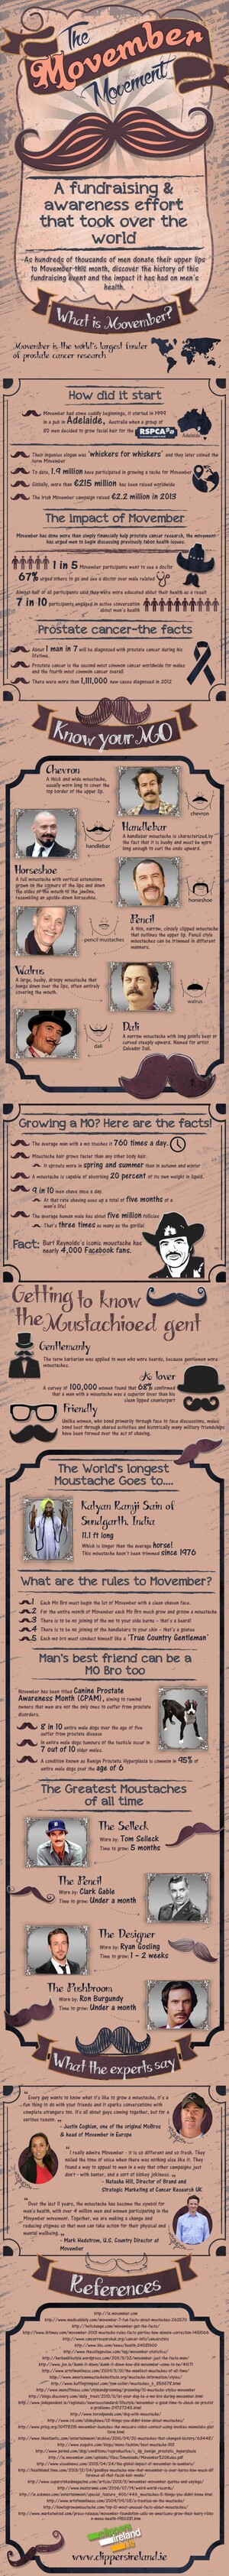 clippers-ireland-infographic-movember.jpg'